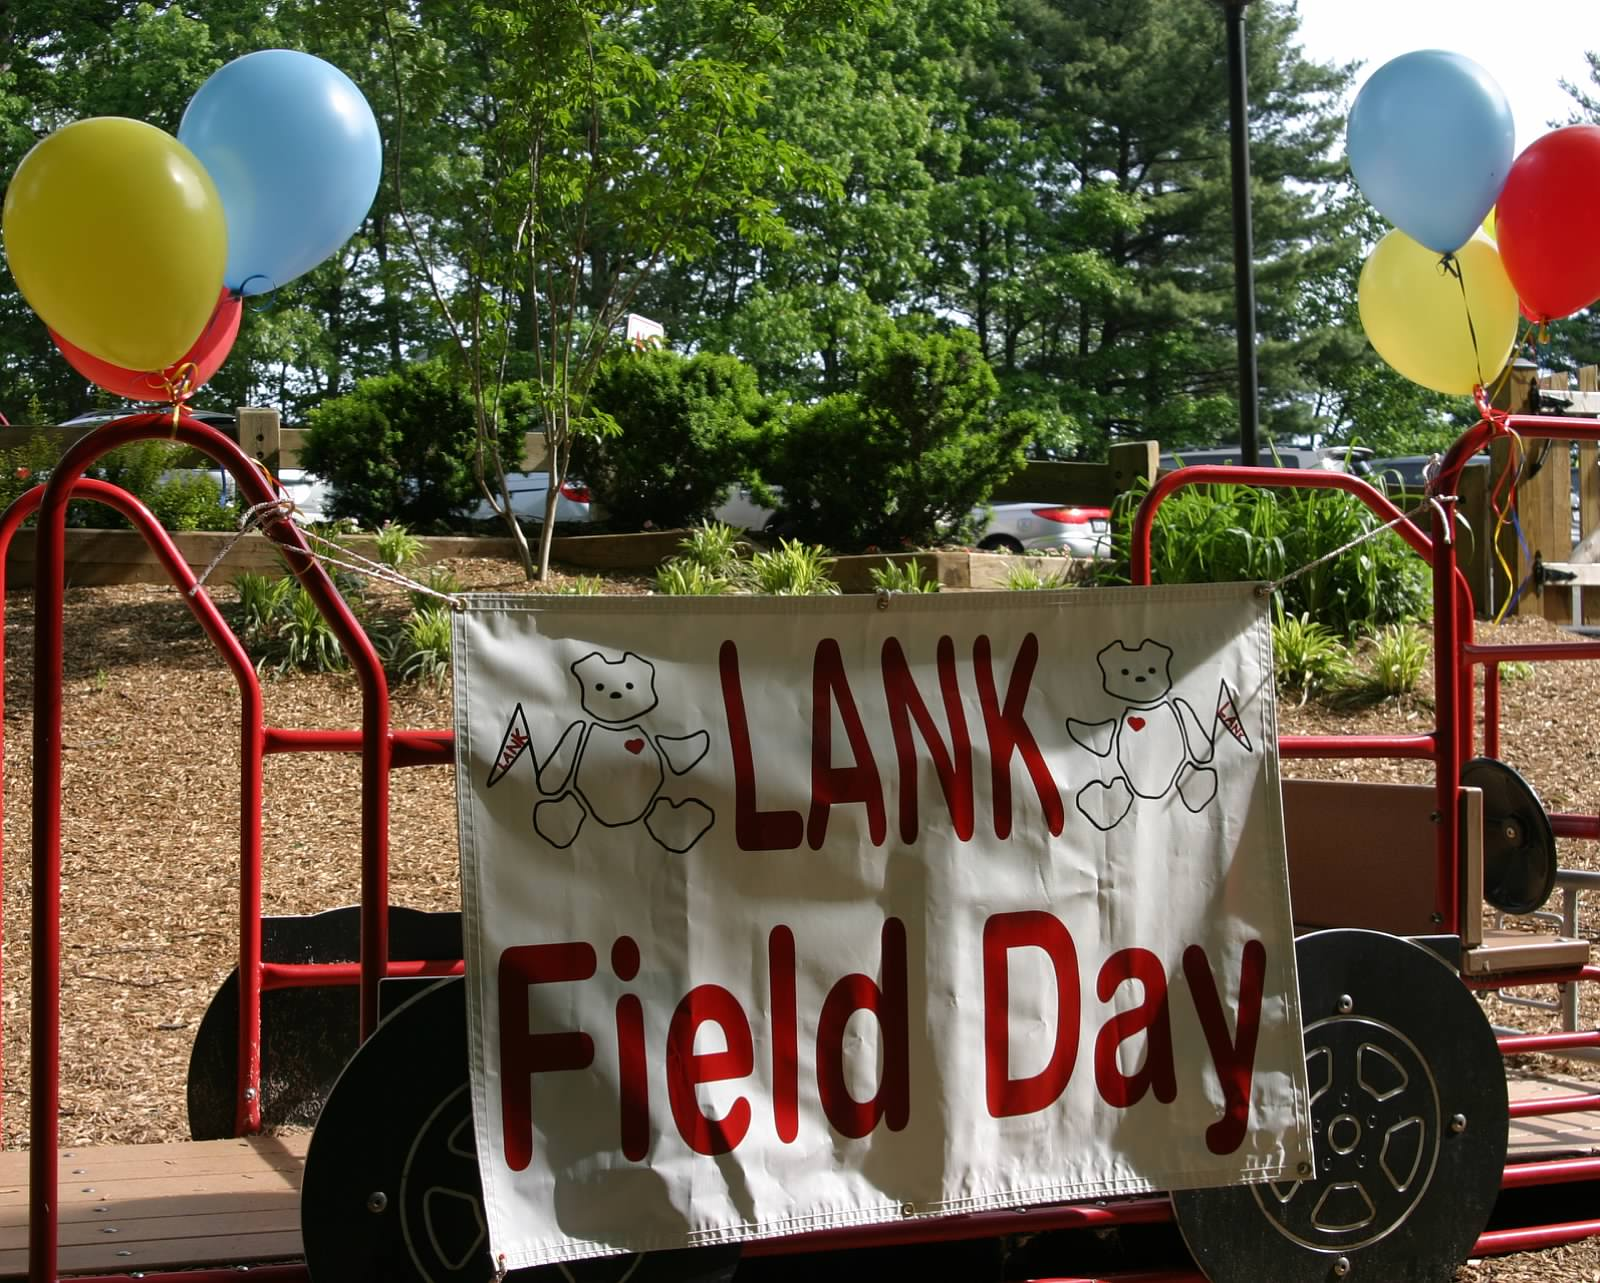 LANK Field Day